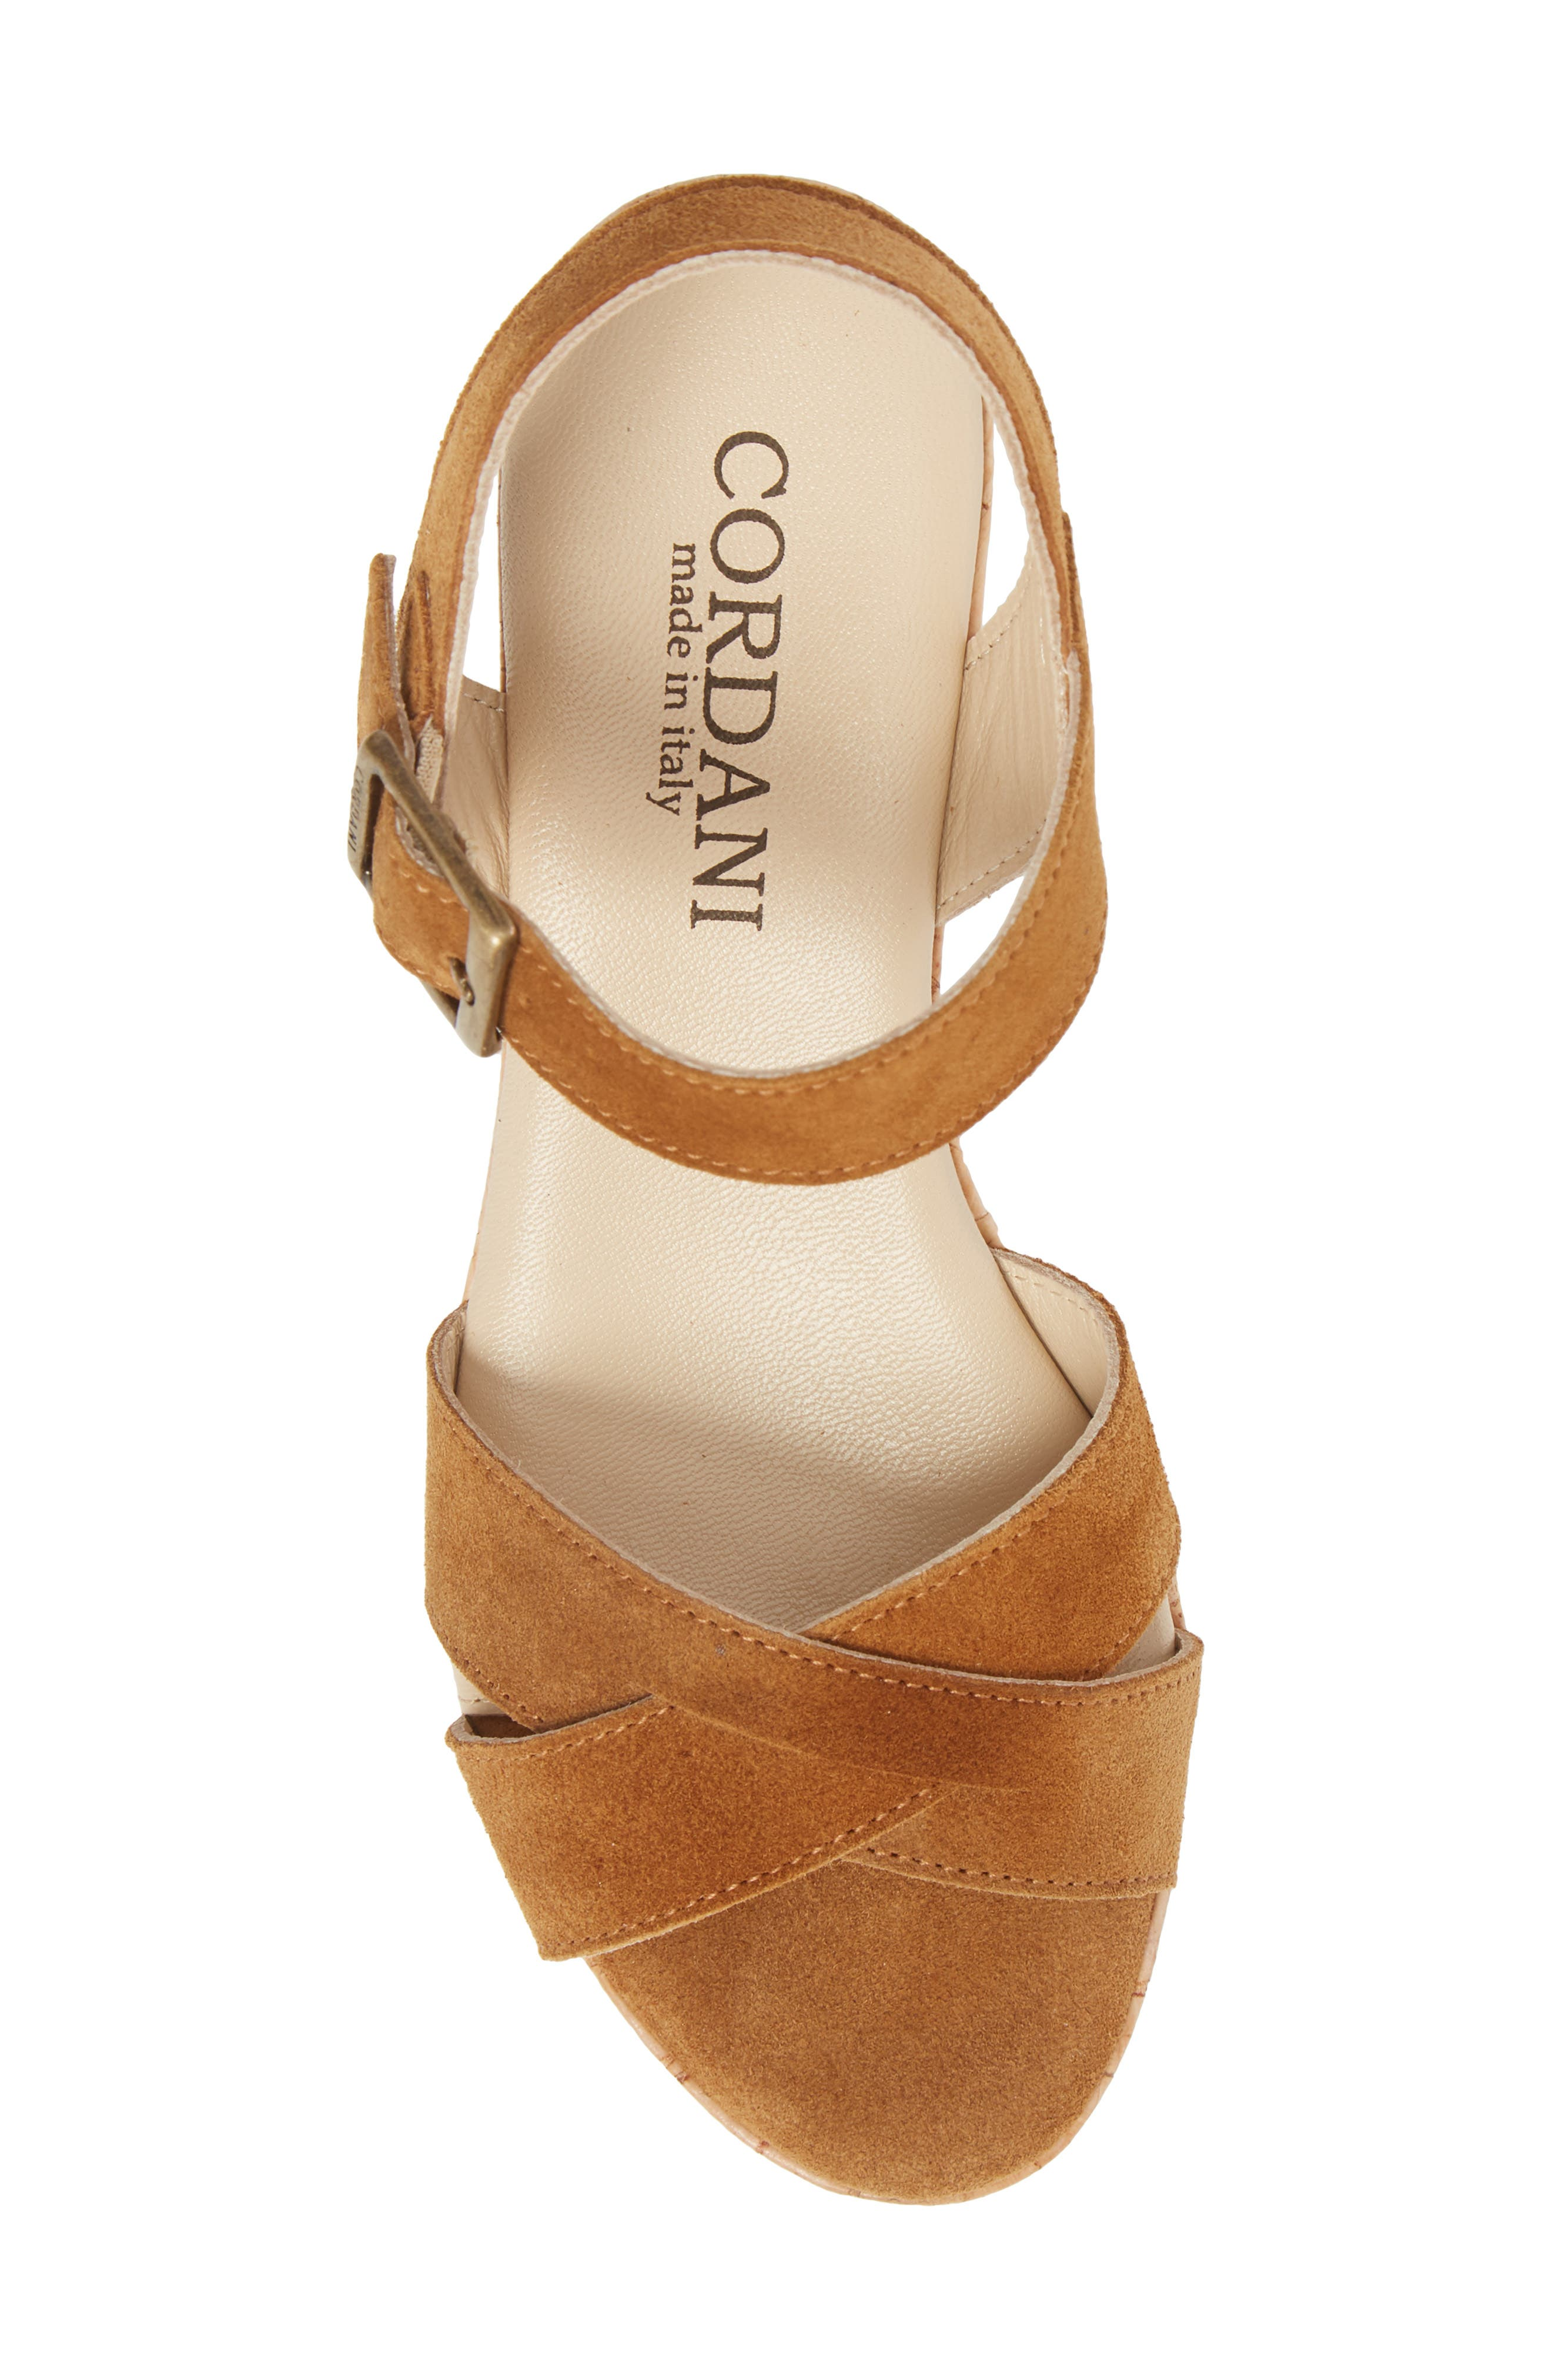 Candy Wedge Sandal,                             Alternate thumbnail 5, color,                             Cola Suede